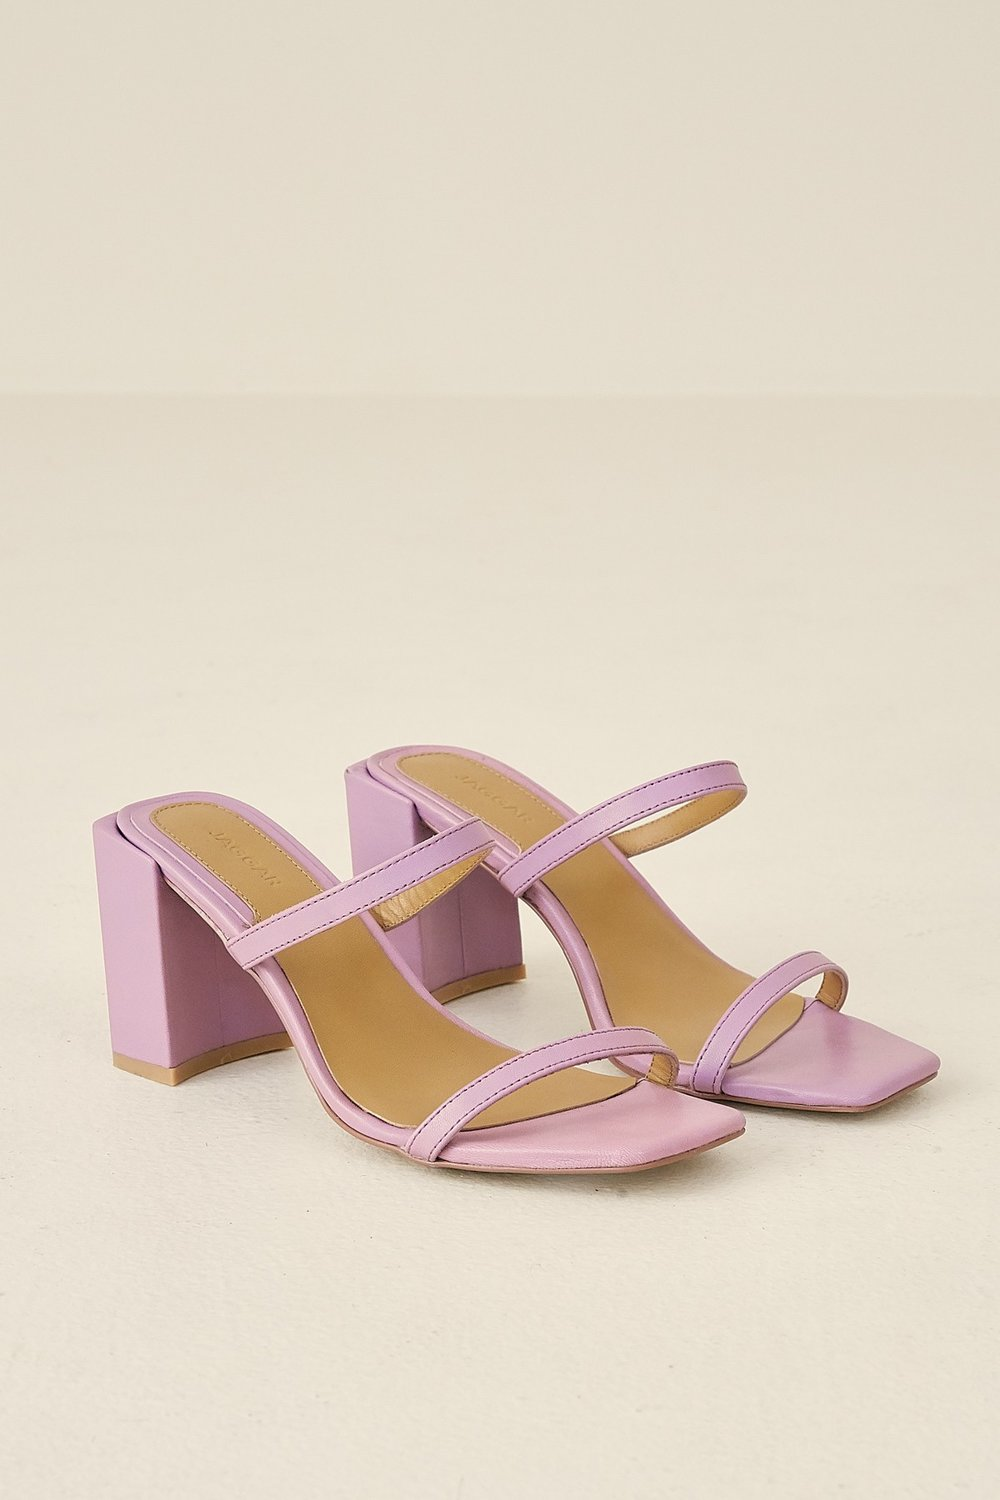 Shop JAGGAR The Label Square Heel in lilac.